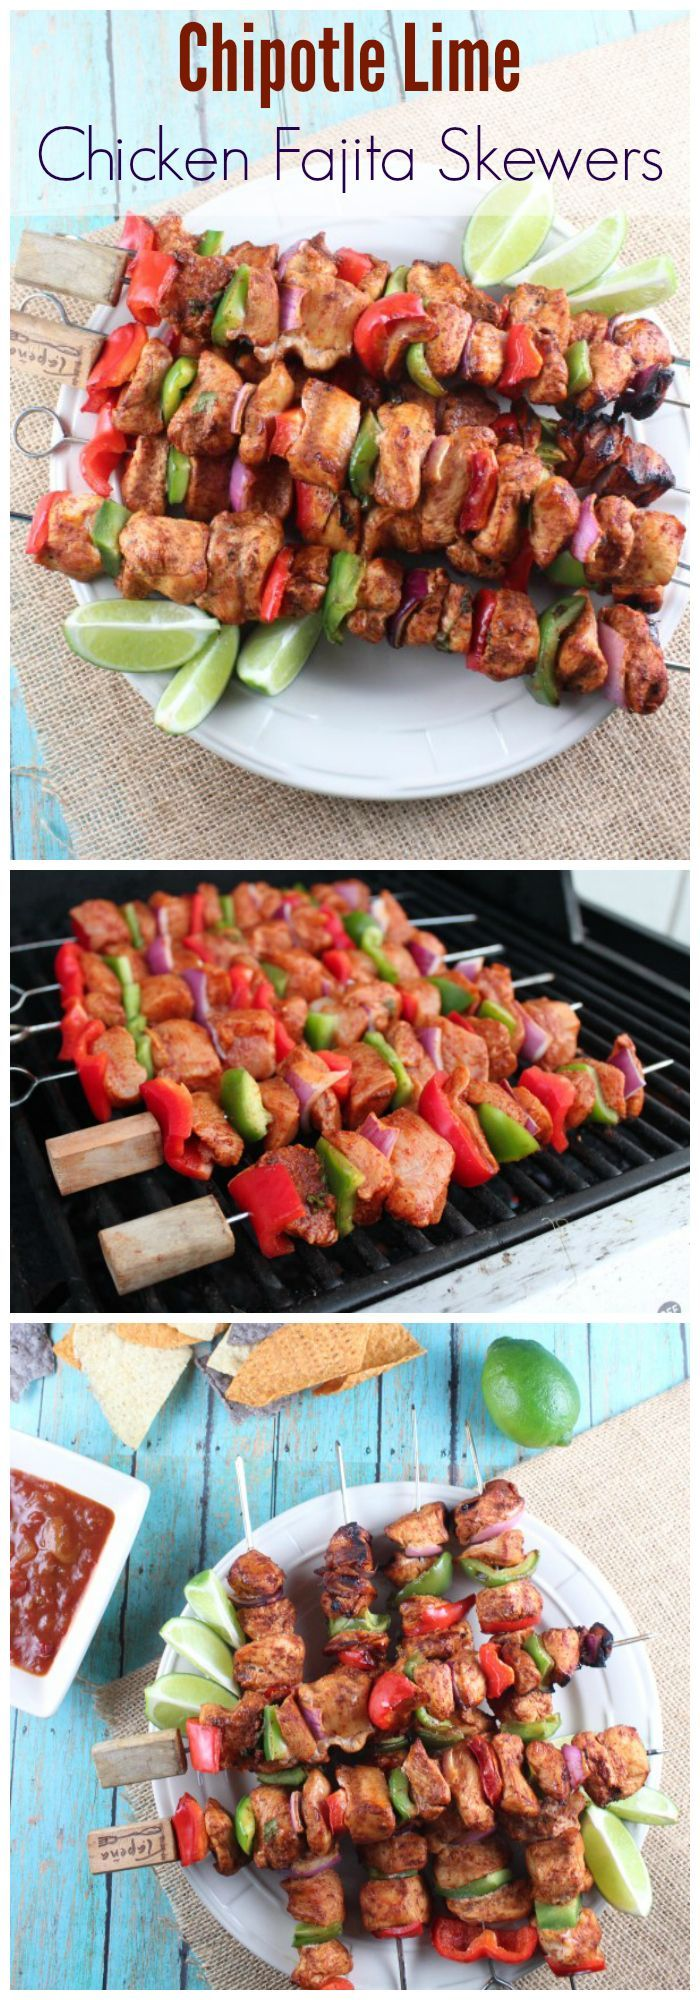 This simple and flavorful recipe for Chipotle Lime Chicken Fajita Skewers is a deliciously healthy way to fire up the grill this summer!